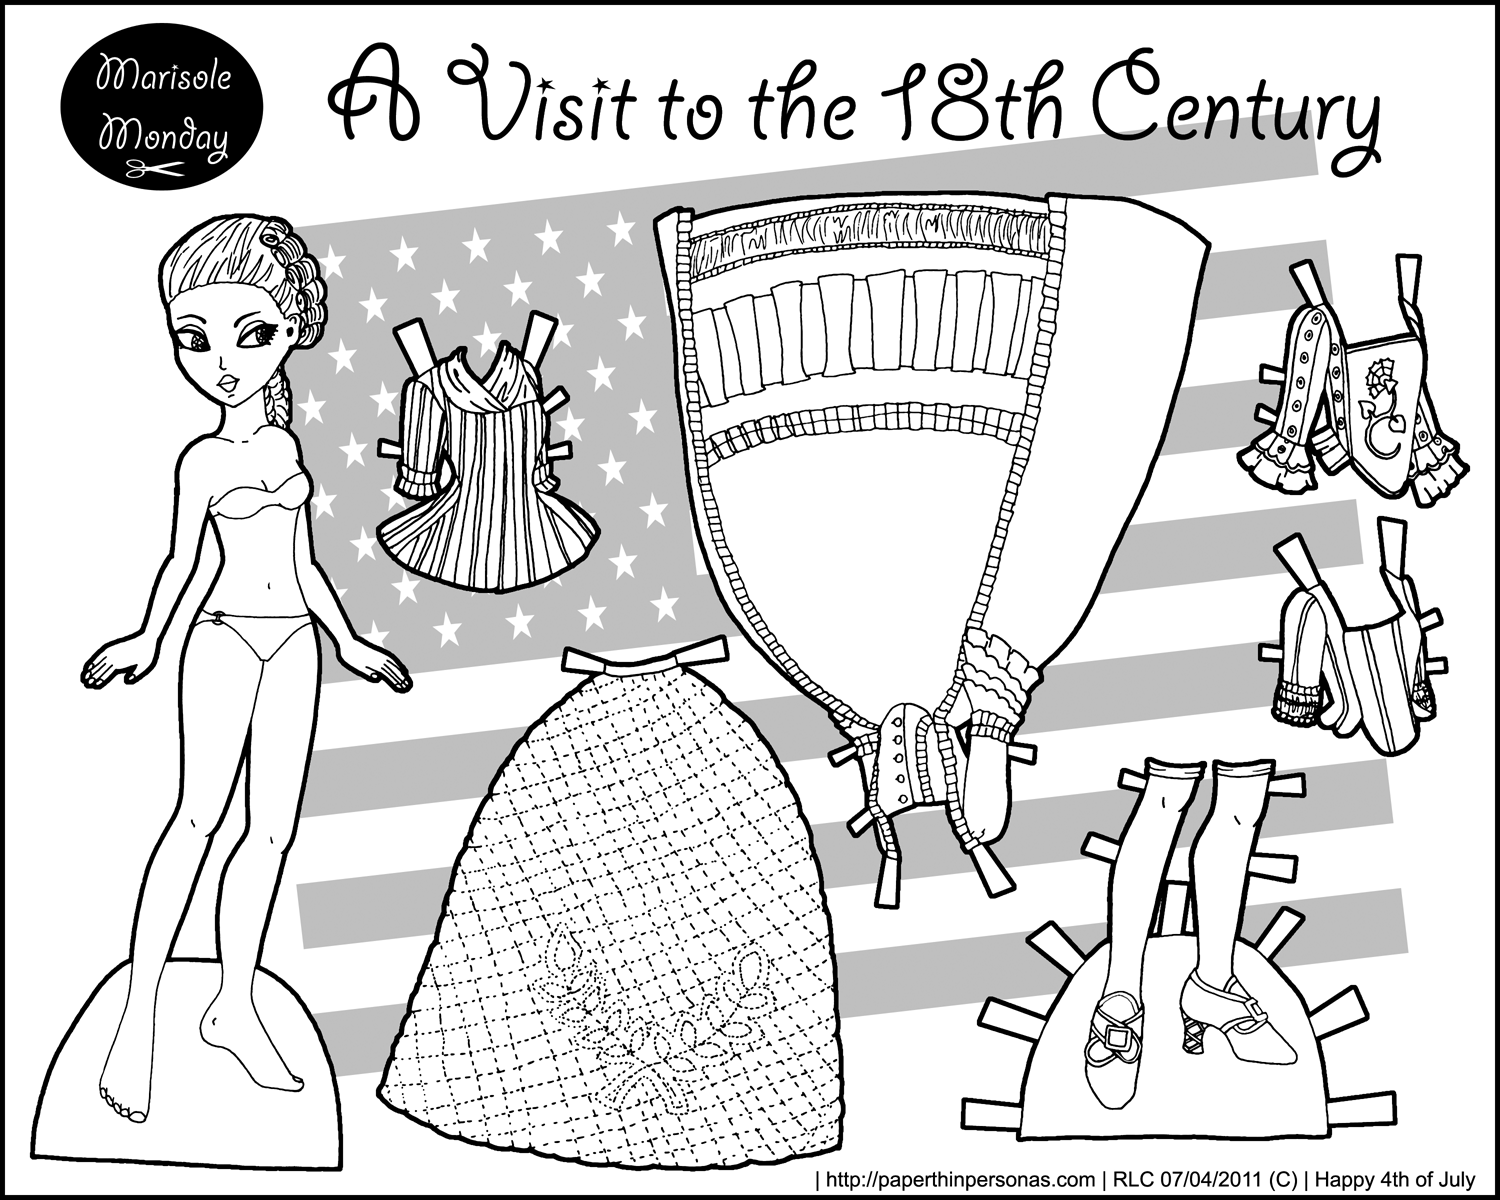 A historical paper doll wearing 18th century clothing celebrating the 4th of July whose free to print from paperthinpersonas.com.